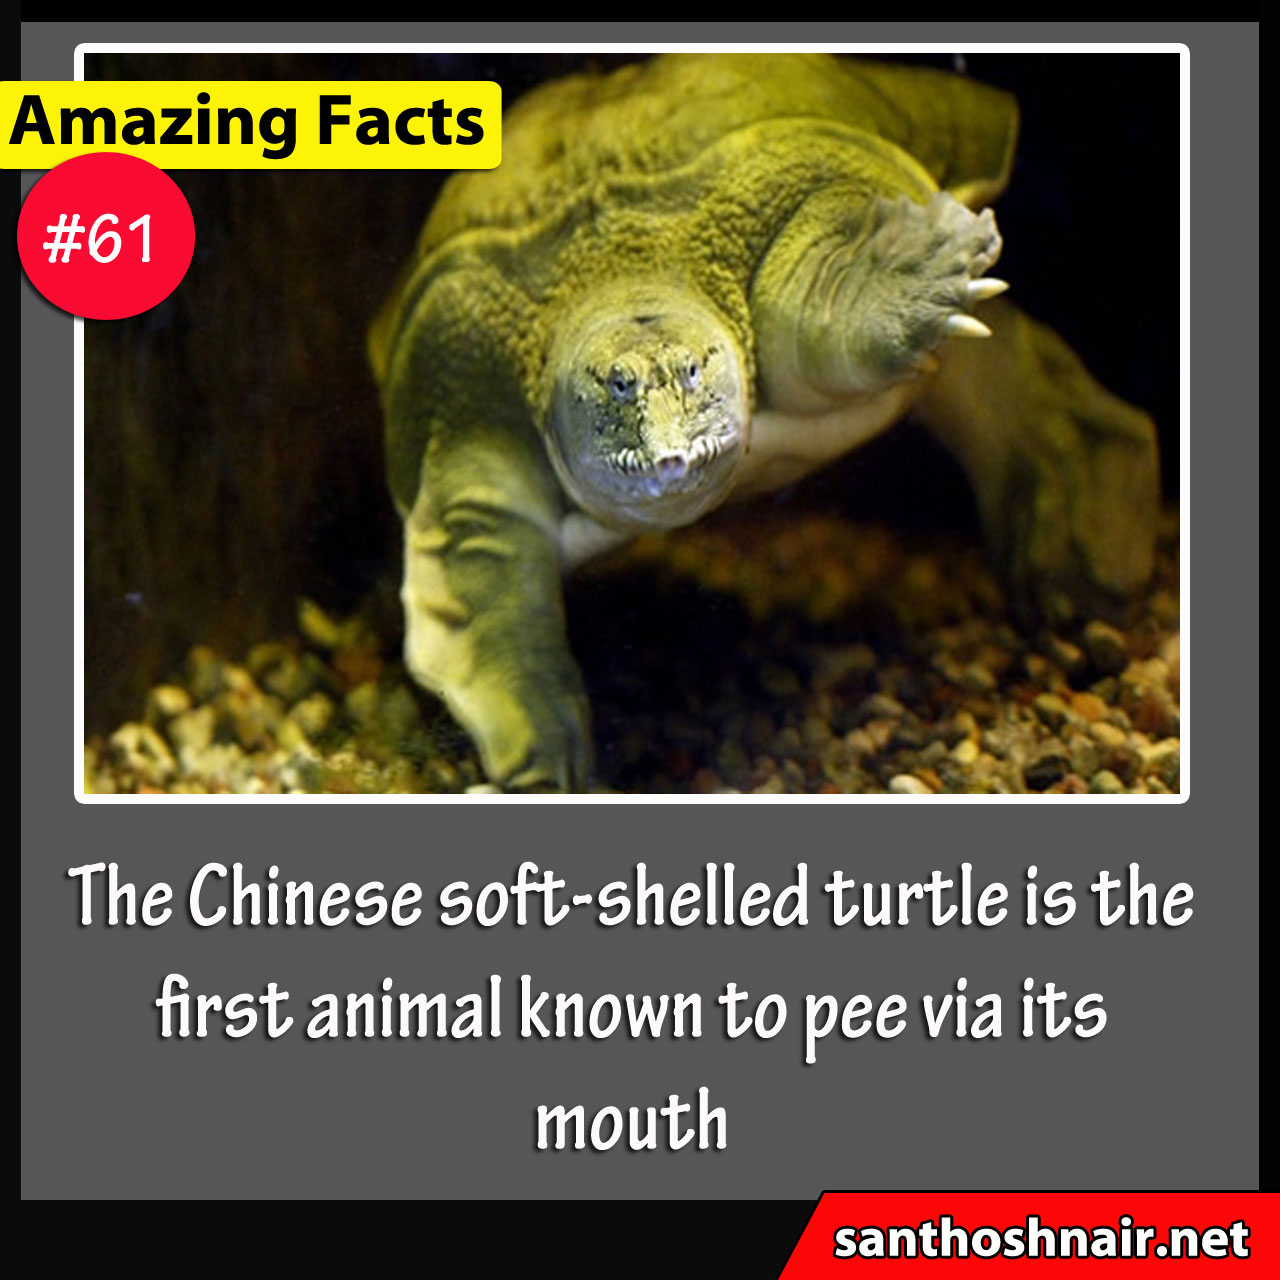 Amazing Facts #61 - Chinese soft-shelled turtle